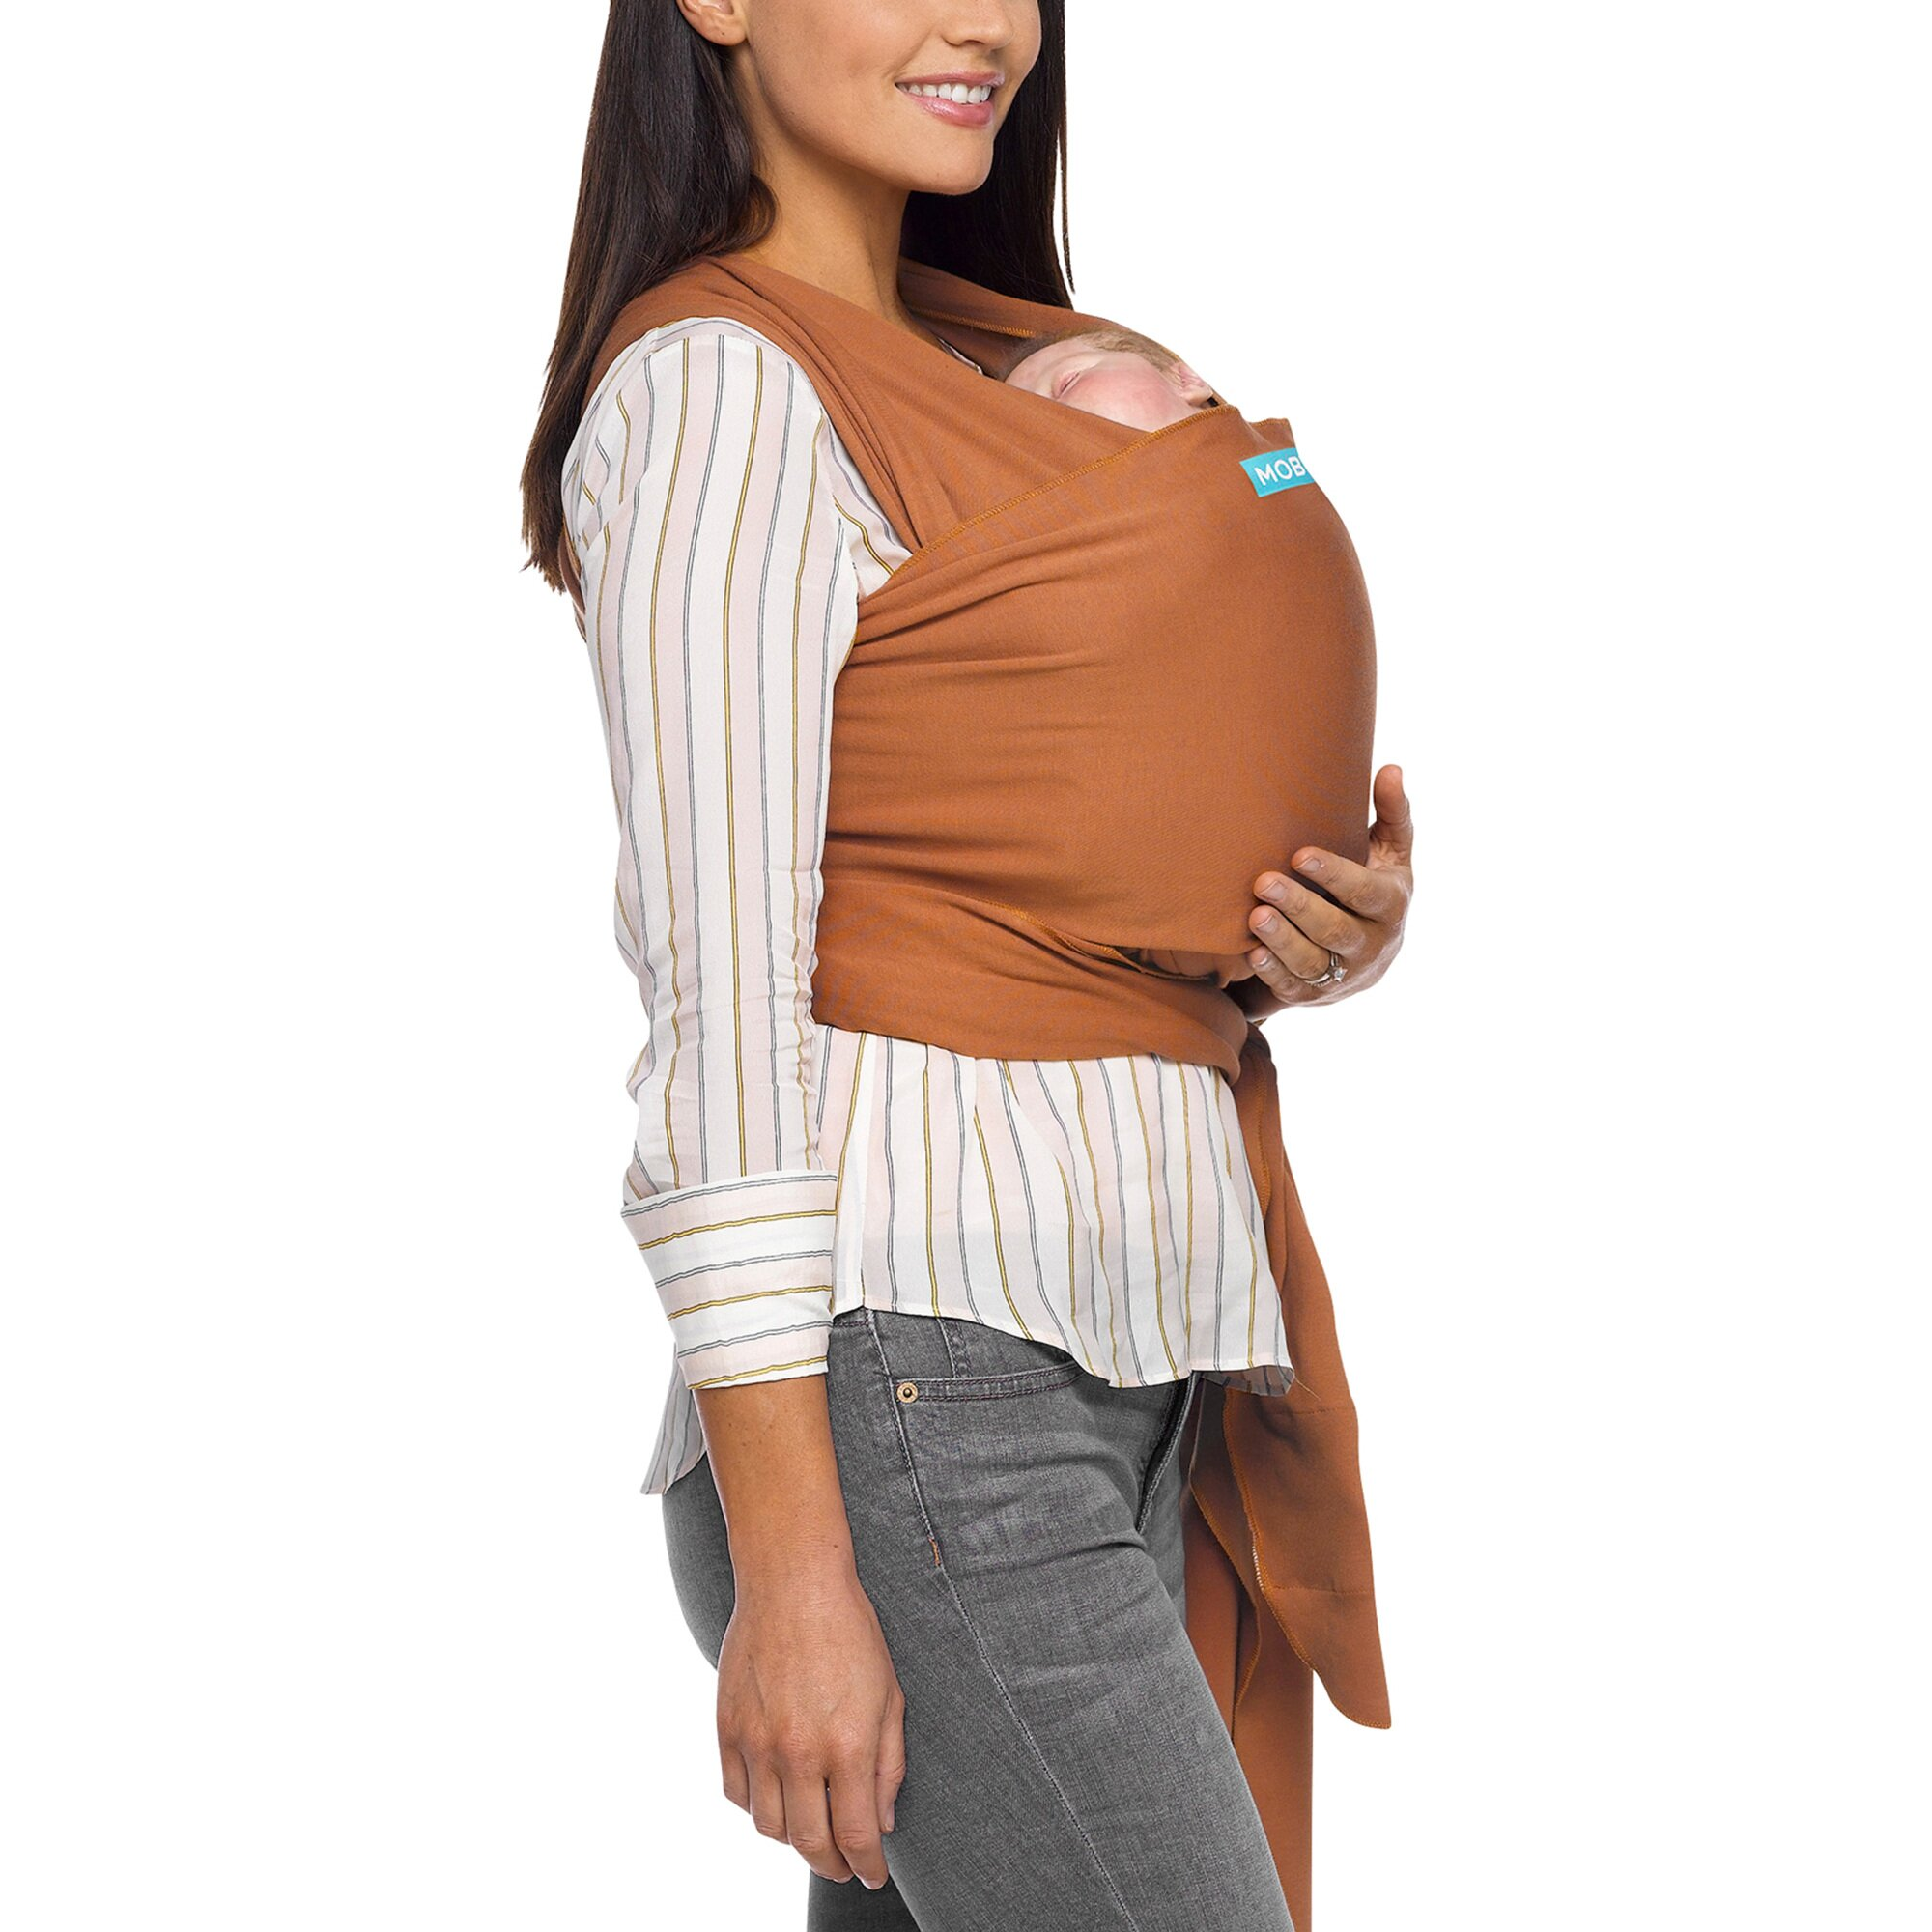 moby-wrap-evolution-tragetuch-550cm-orange